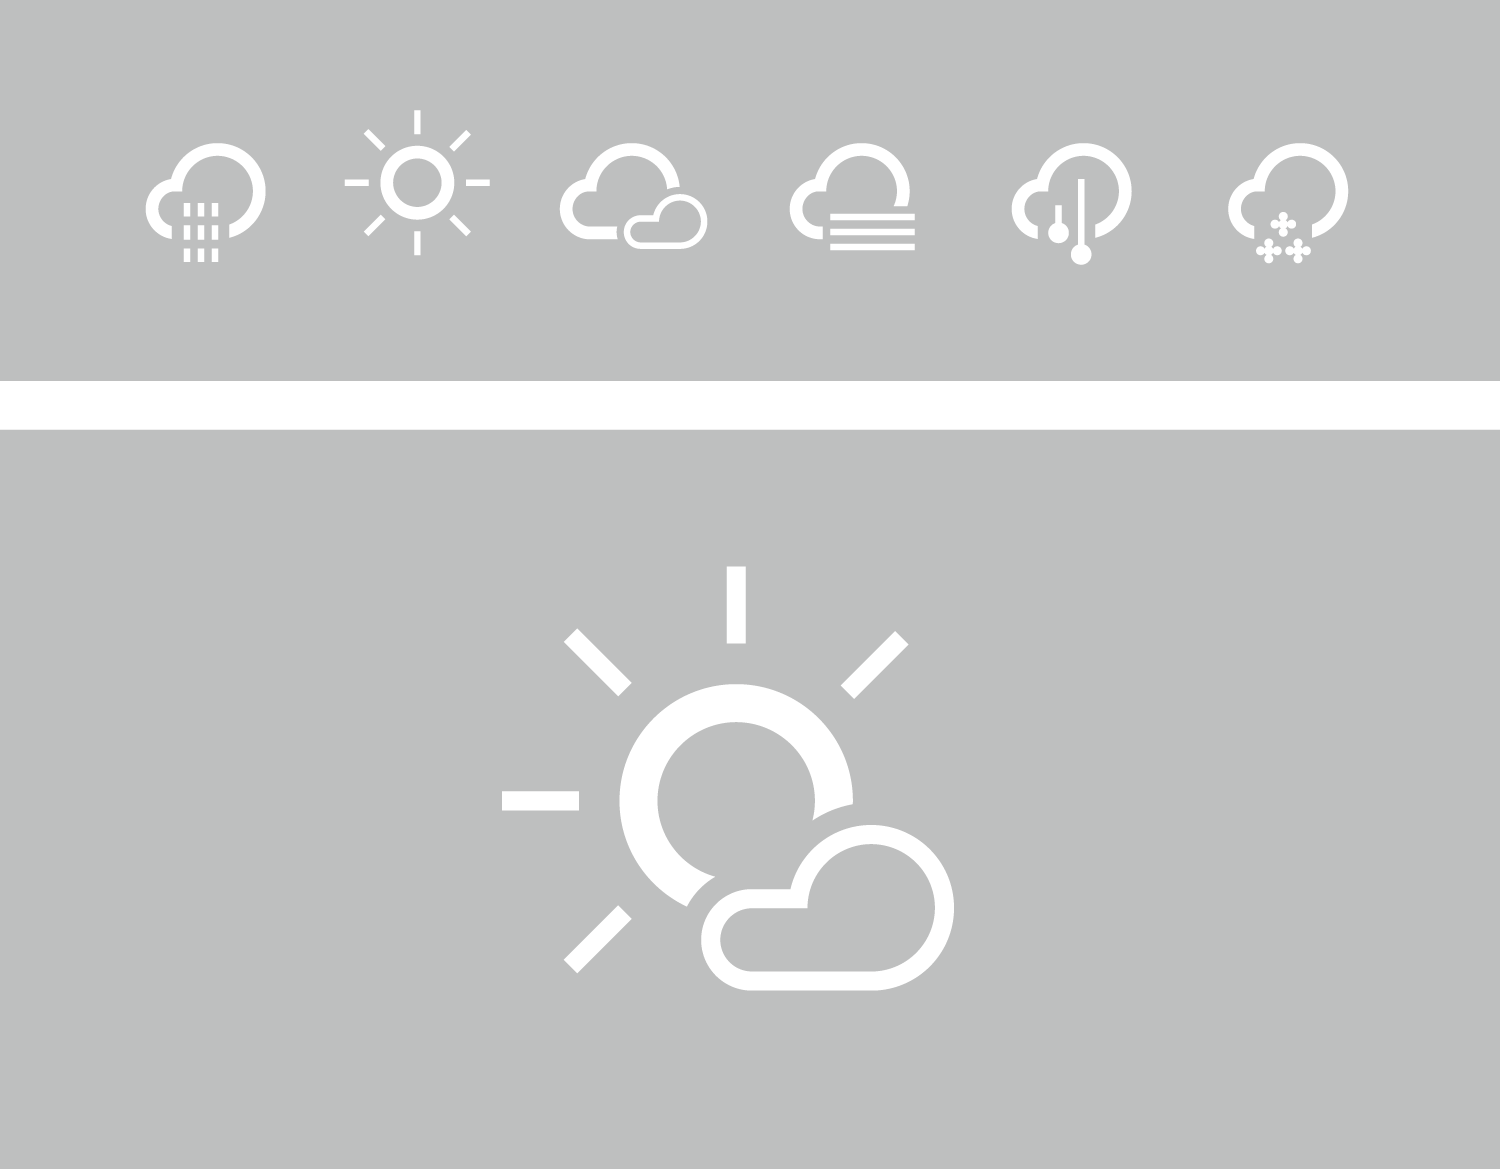 weather-forecast-icons-contour-outlined-design